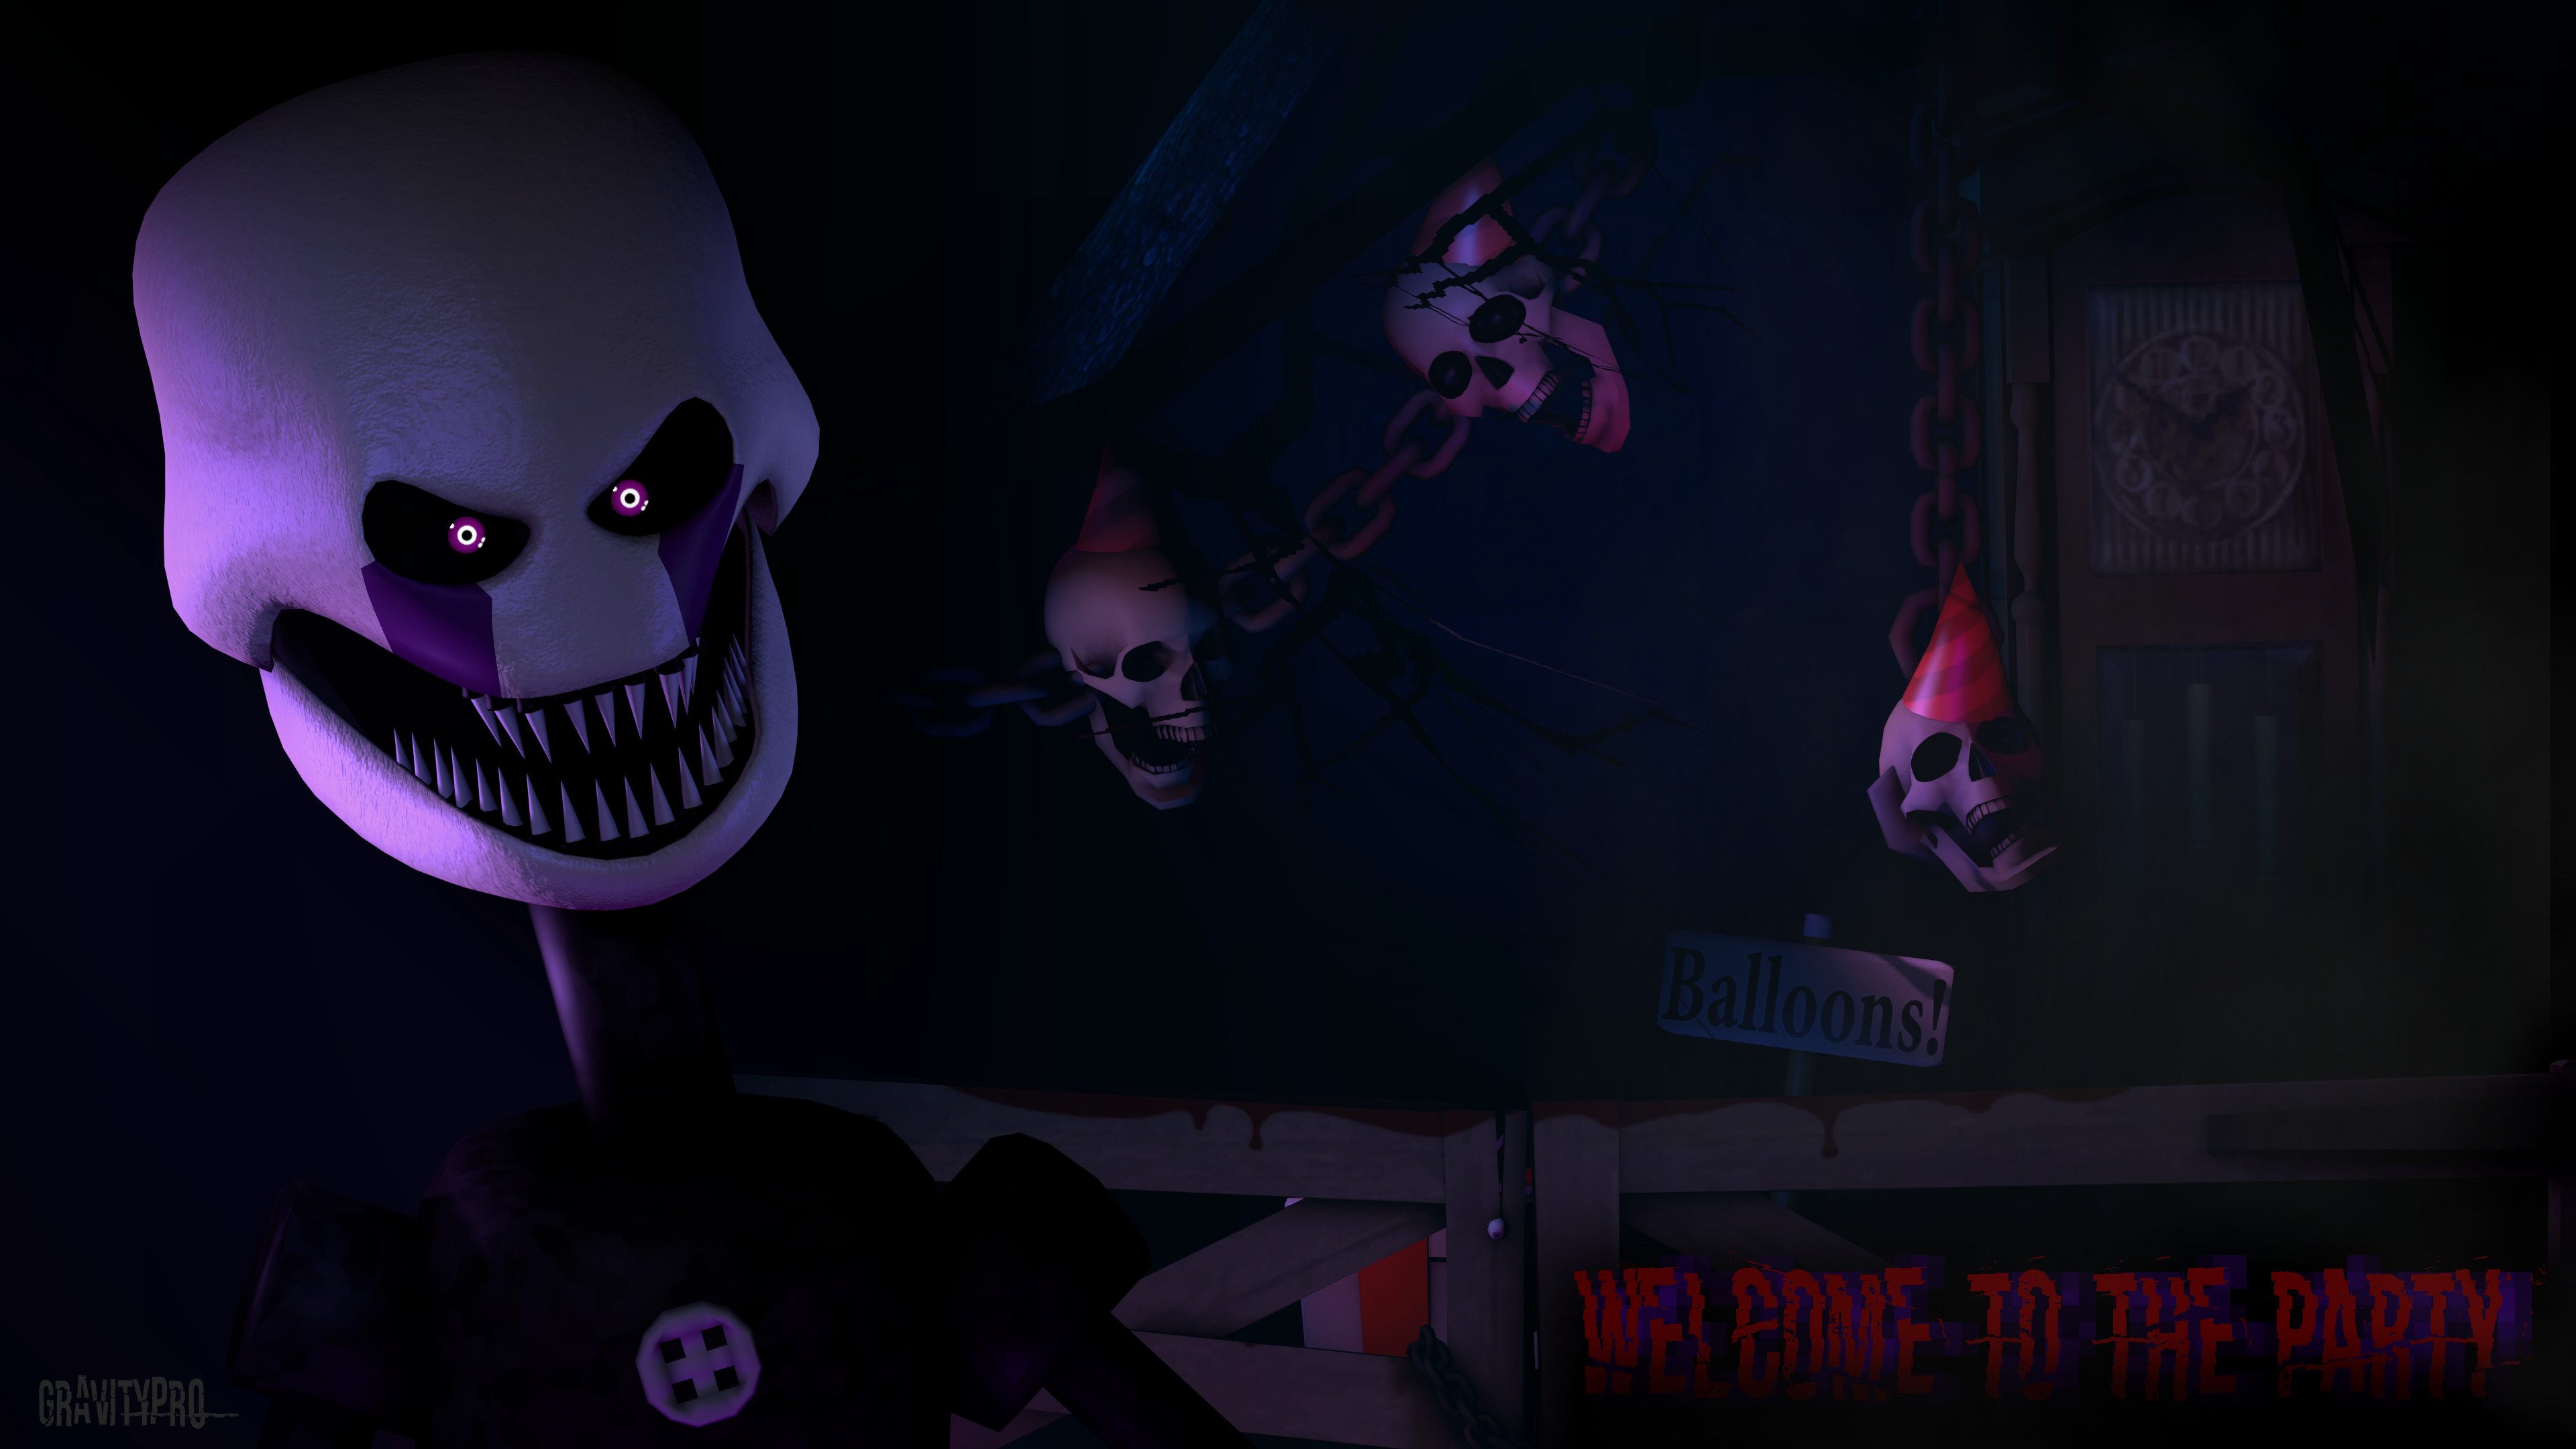 … Welcome to the Party [FNAF SFM, 4K Wallpaper] by GravityPro